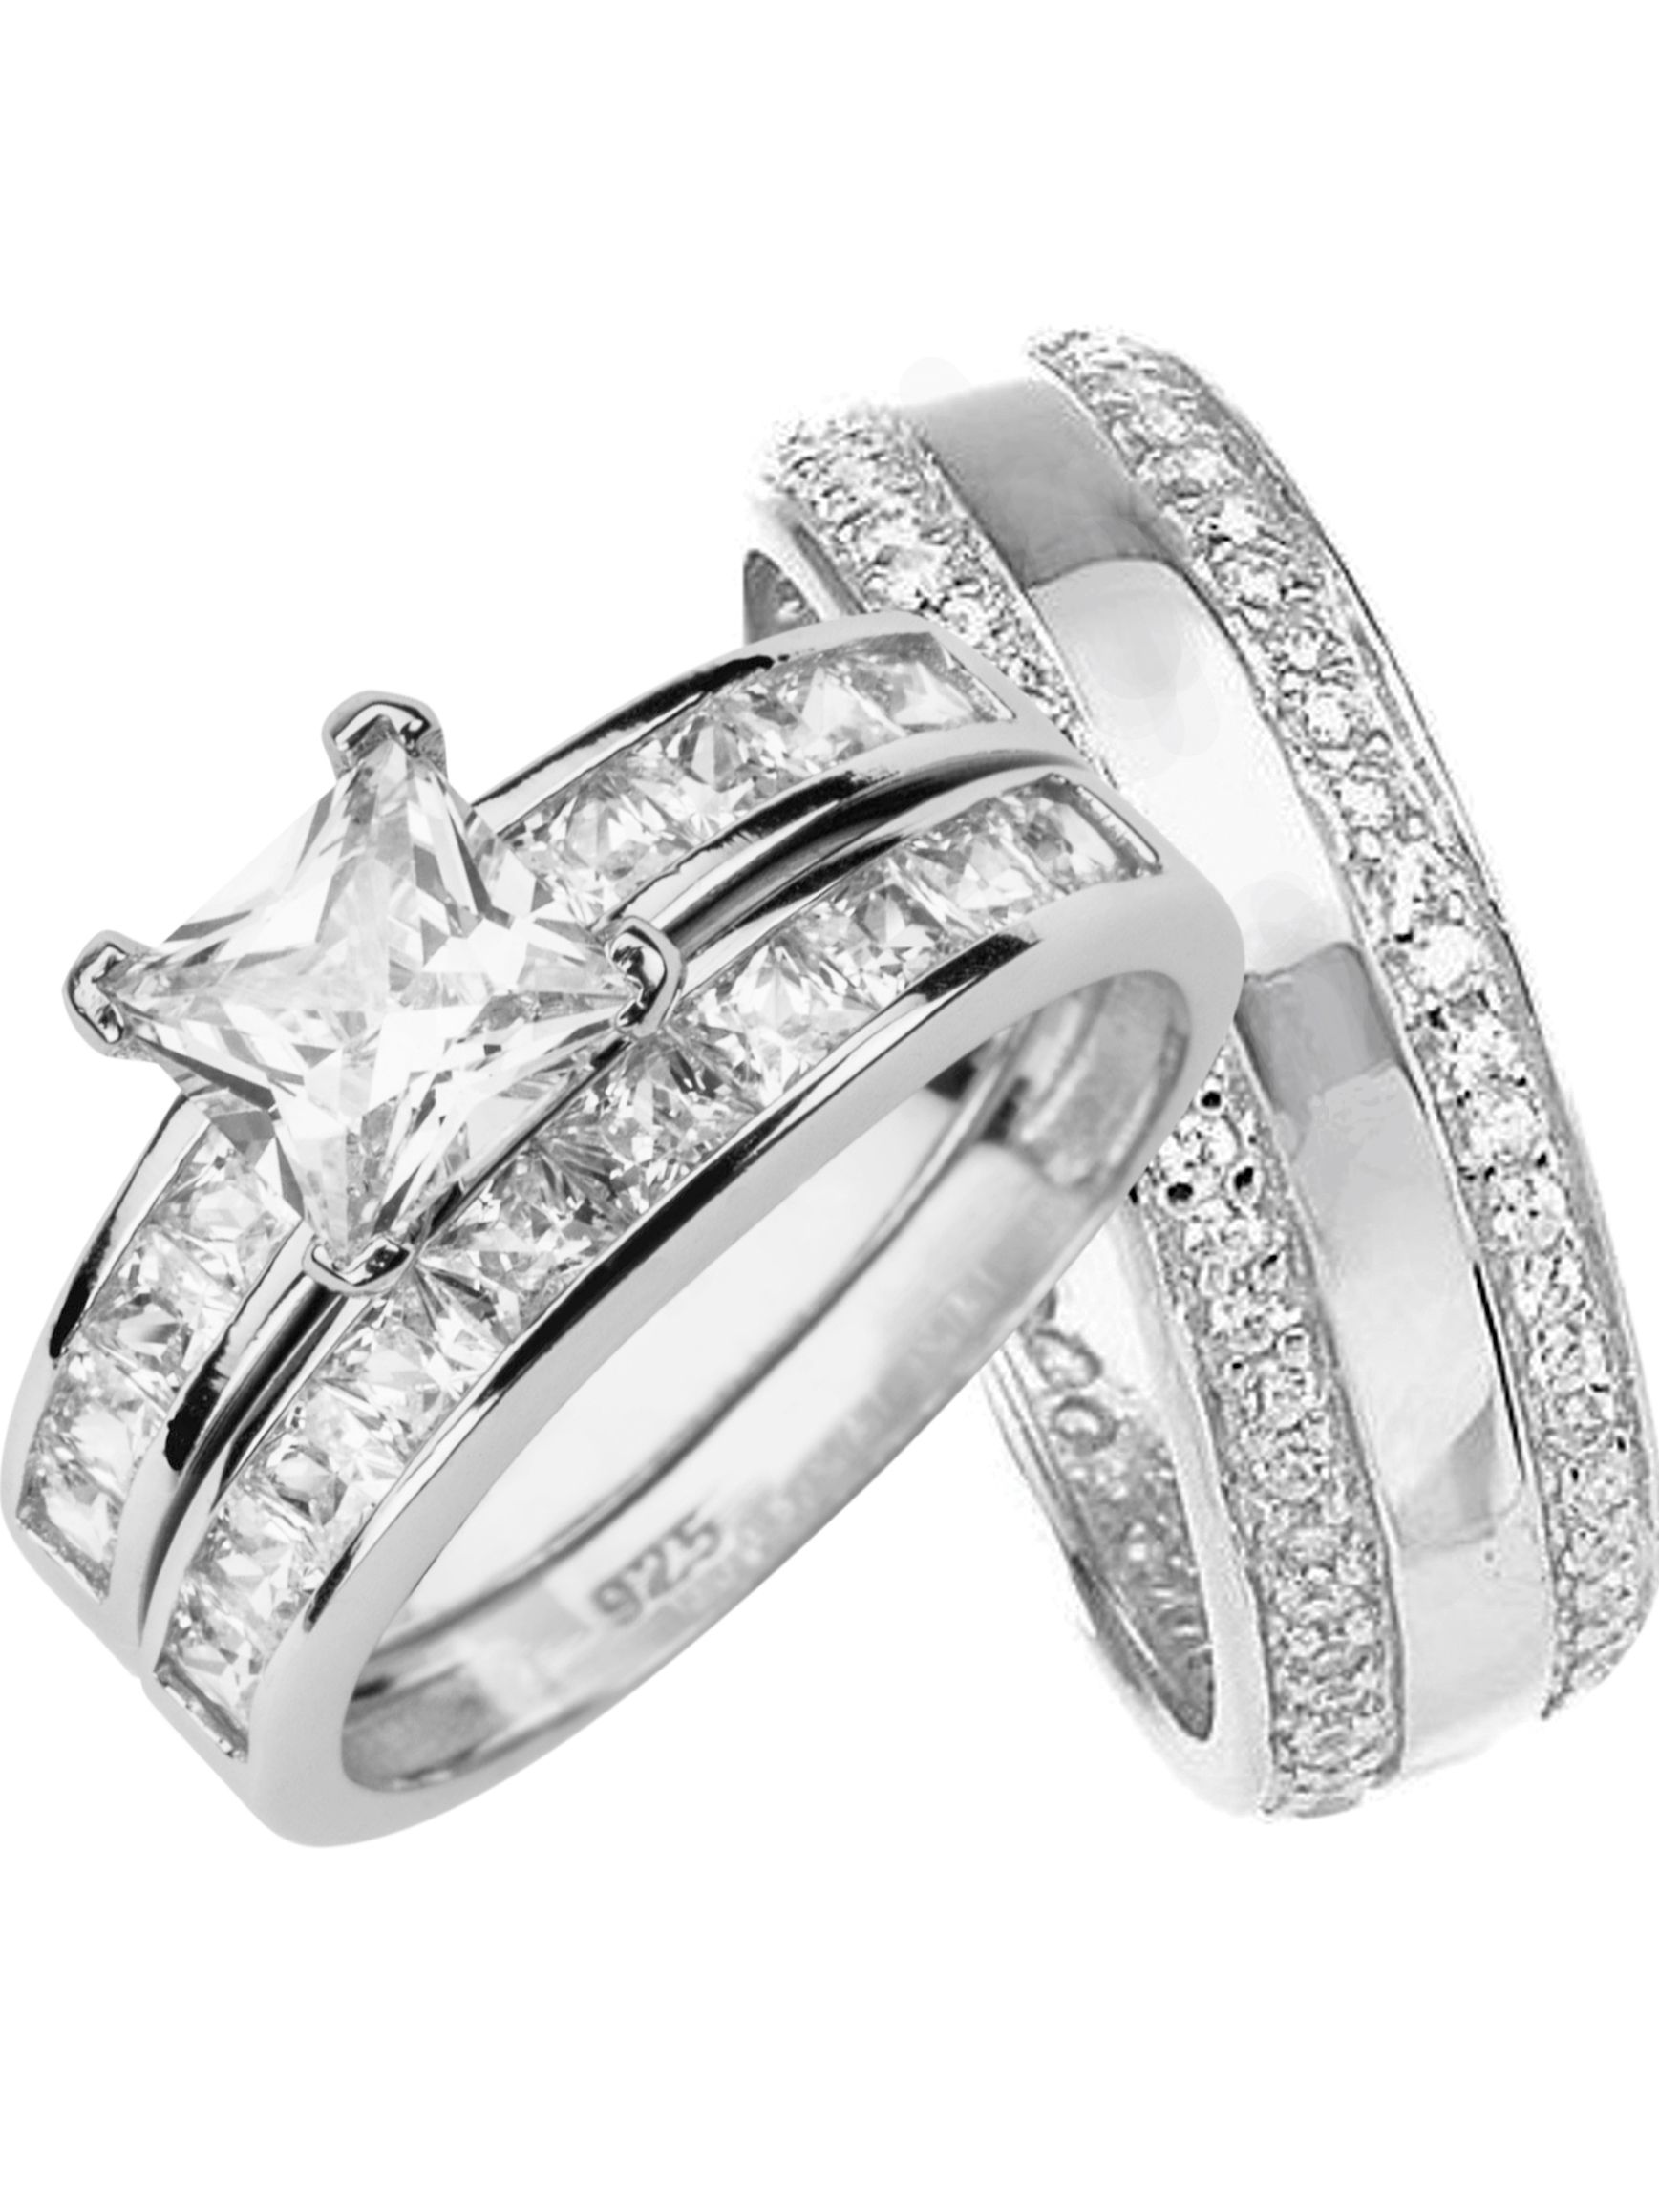 Laraso Co His And Hers Wedding Rings Set Sterling Silver Bands For Him Her Walmart Com In 2020 Cheap Wedding Rings Sets Wedding Rings Sets His And Hers Wedding Ring Sets